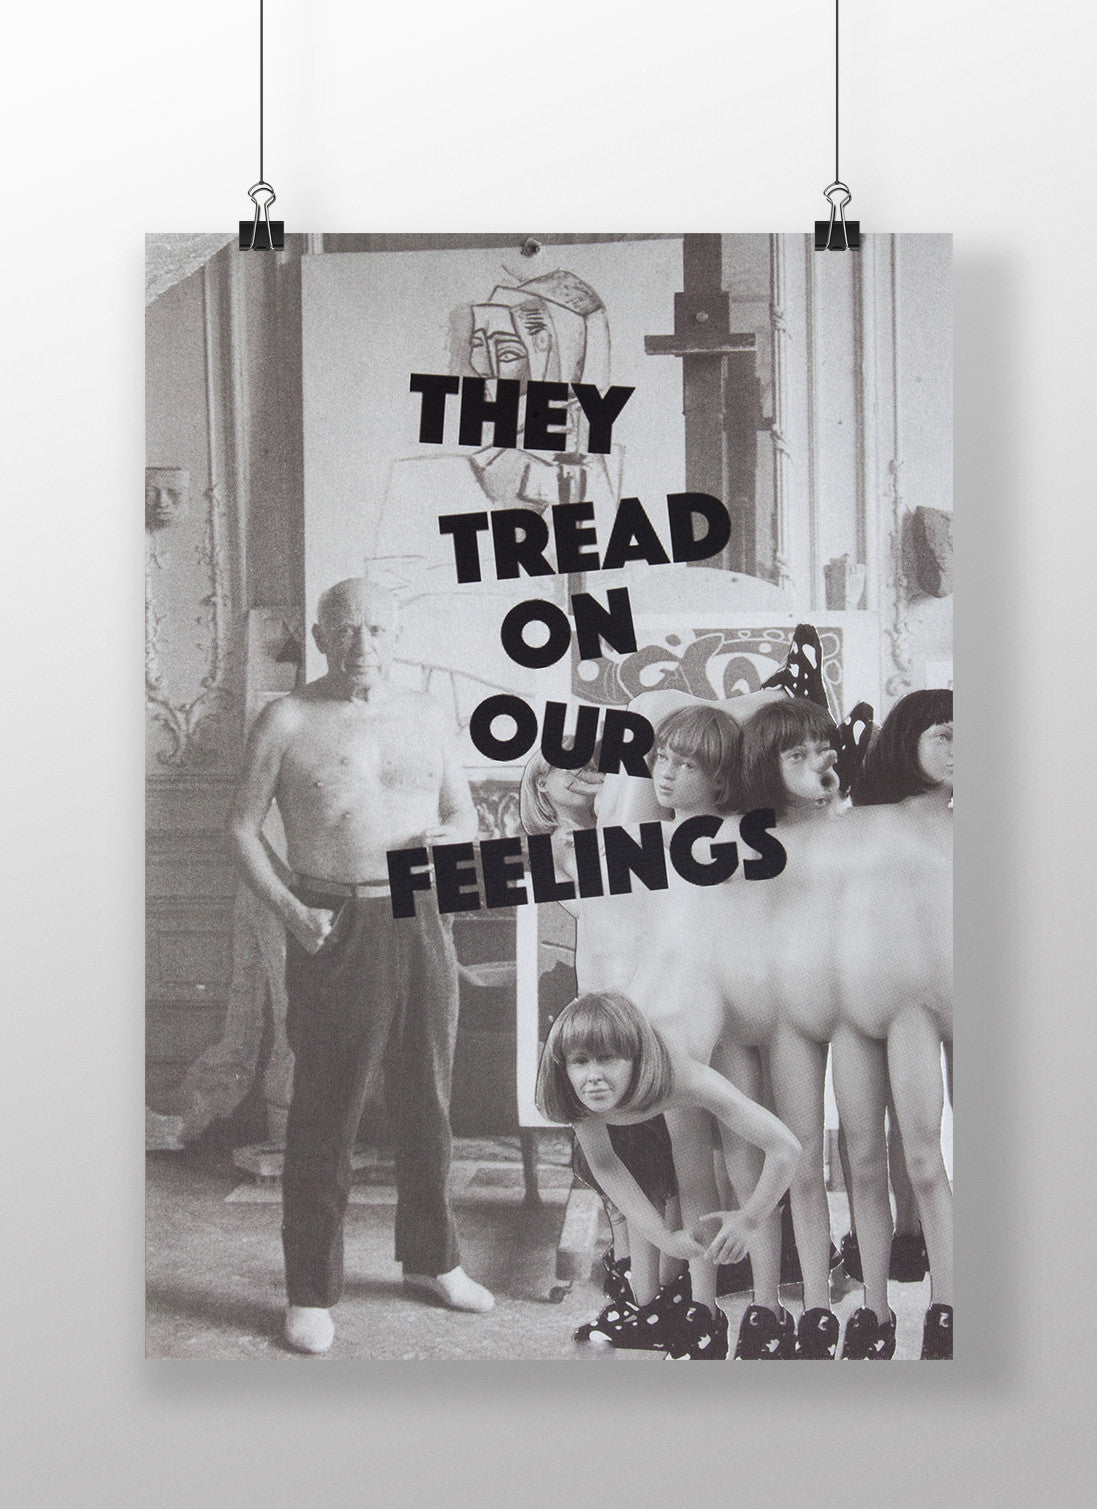 THEY TREAD ON OUR FEELINGS - Poster